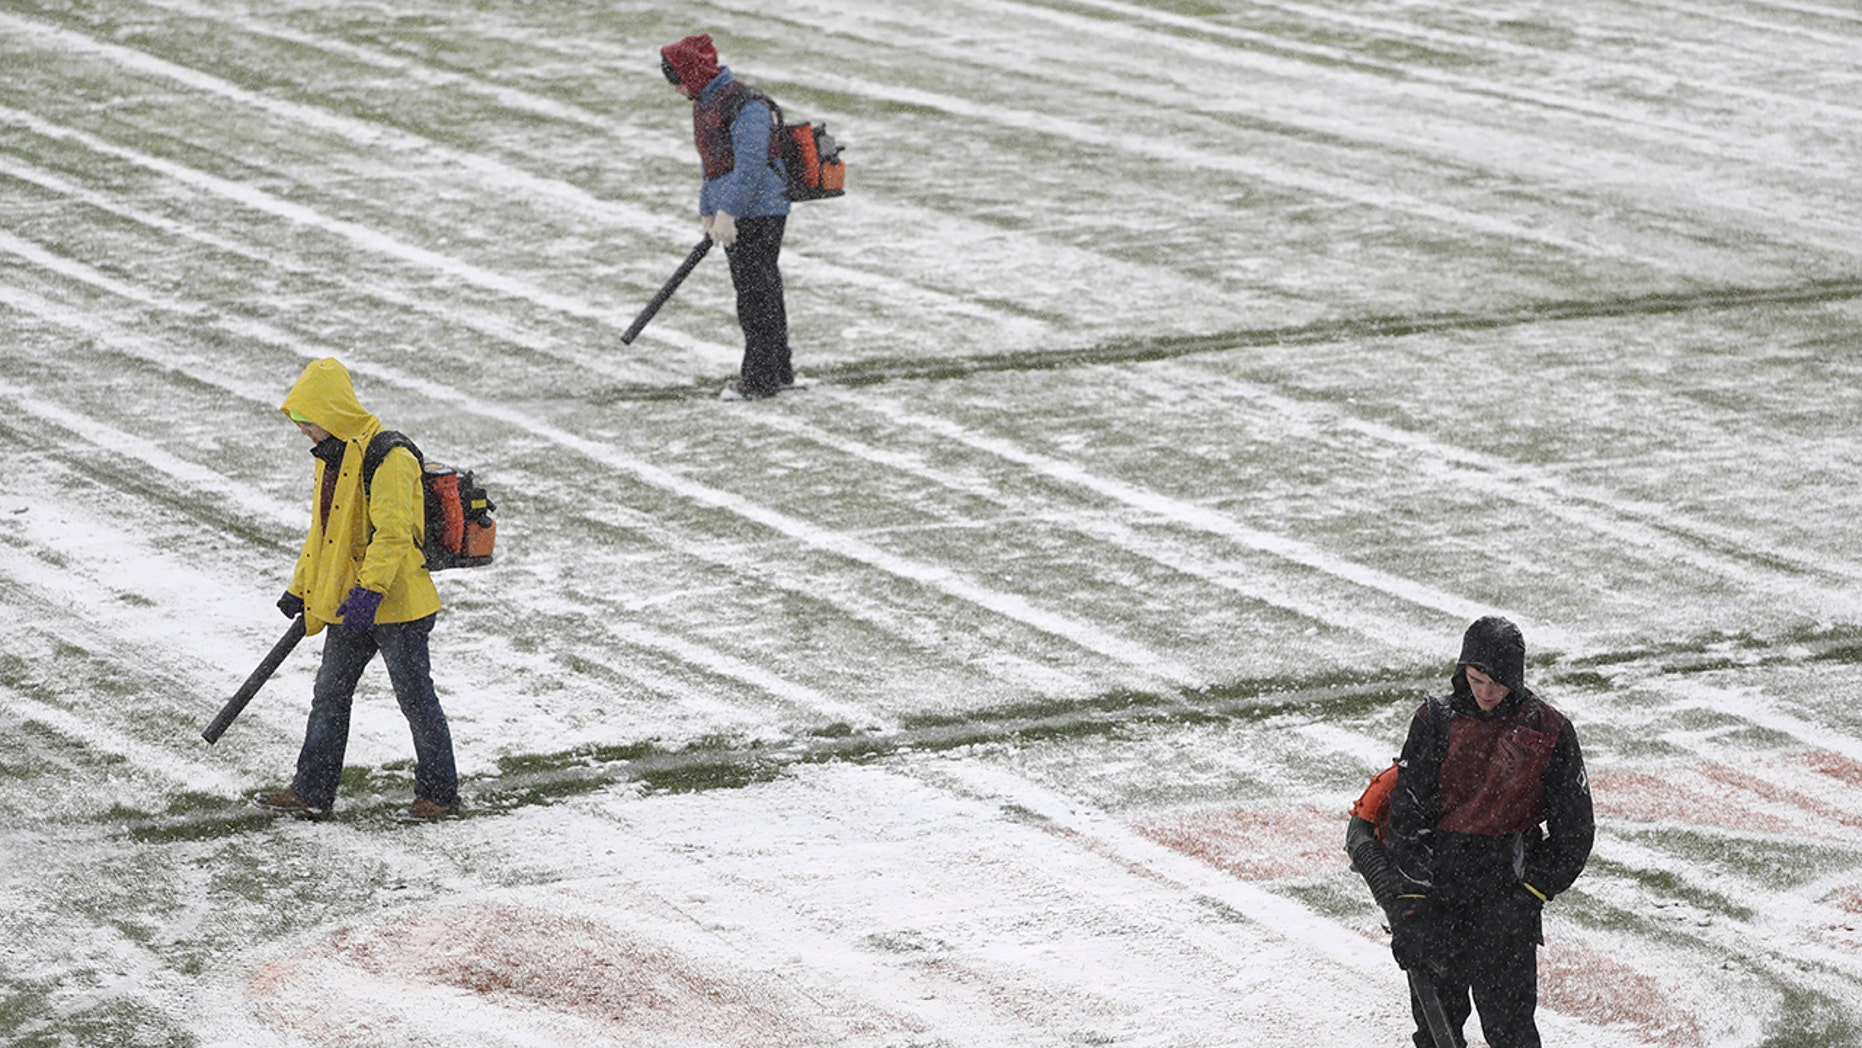 Workers clear snow from Soldier Field before an NFL football game between the Chicago Bears and Cleveland Browns in Chicago, Sunday, Dec. 24, 2017. (AP Photo/Charles Rex Arbogast)